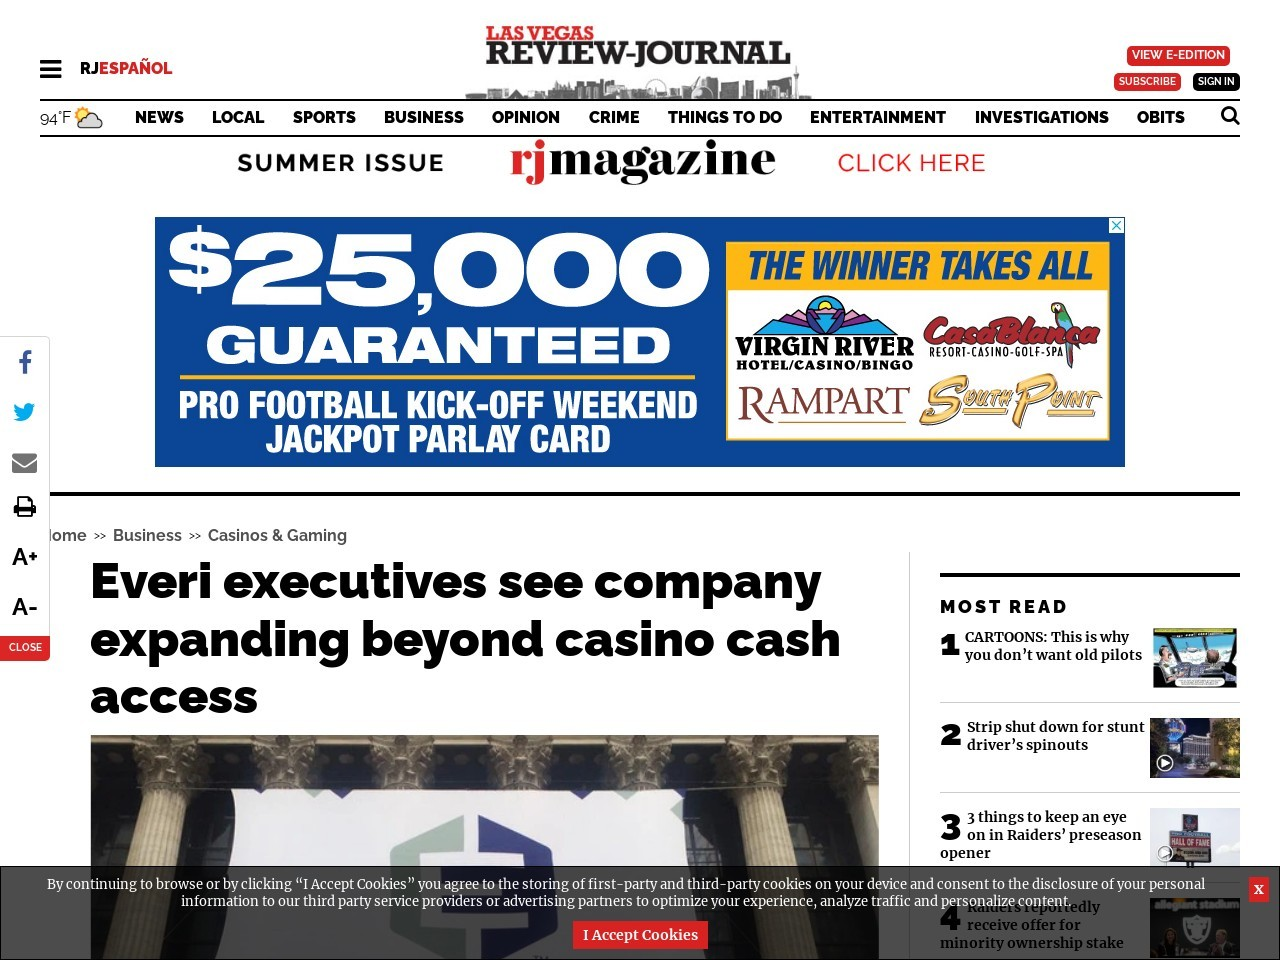 Everi executives see company expanding beyond casino cash access